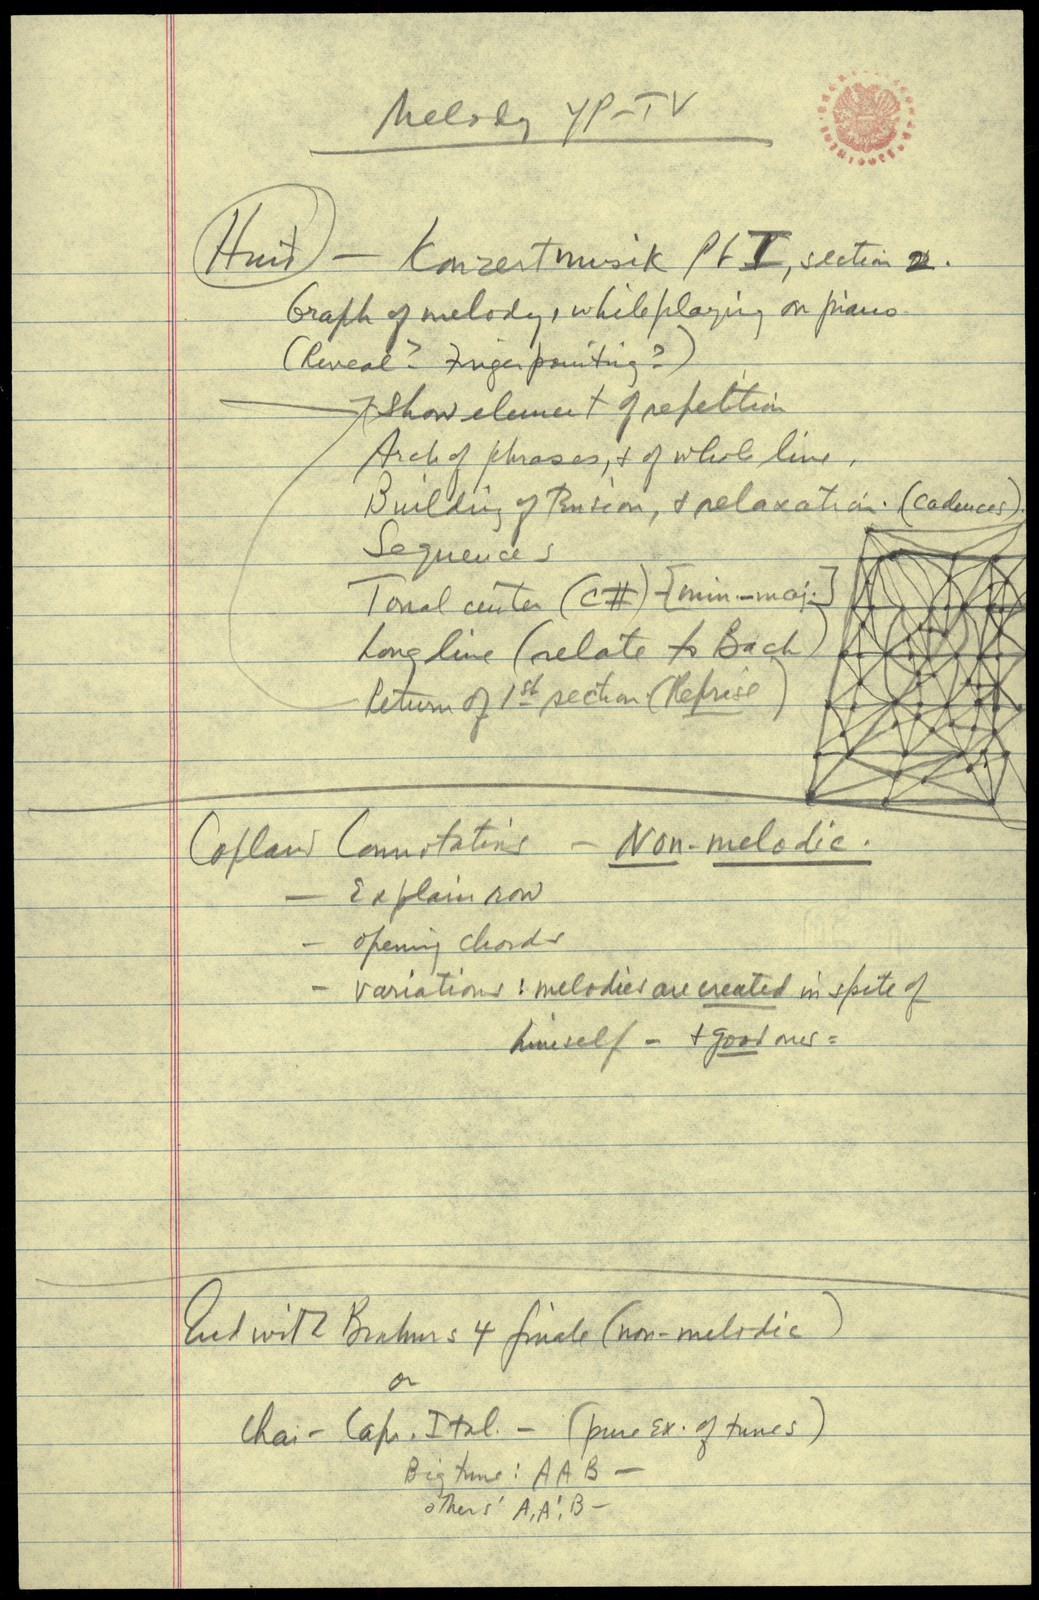 Young People's Concerts Scripts: What is a Melody? [pencil on yellow legal pad paper with emendations in red pencil]